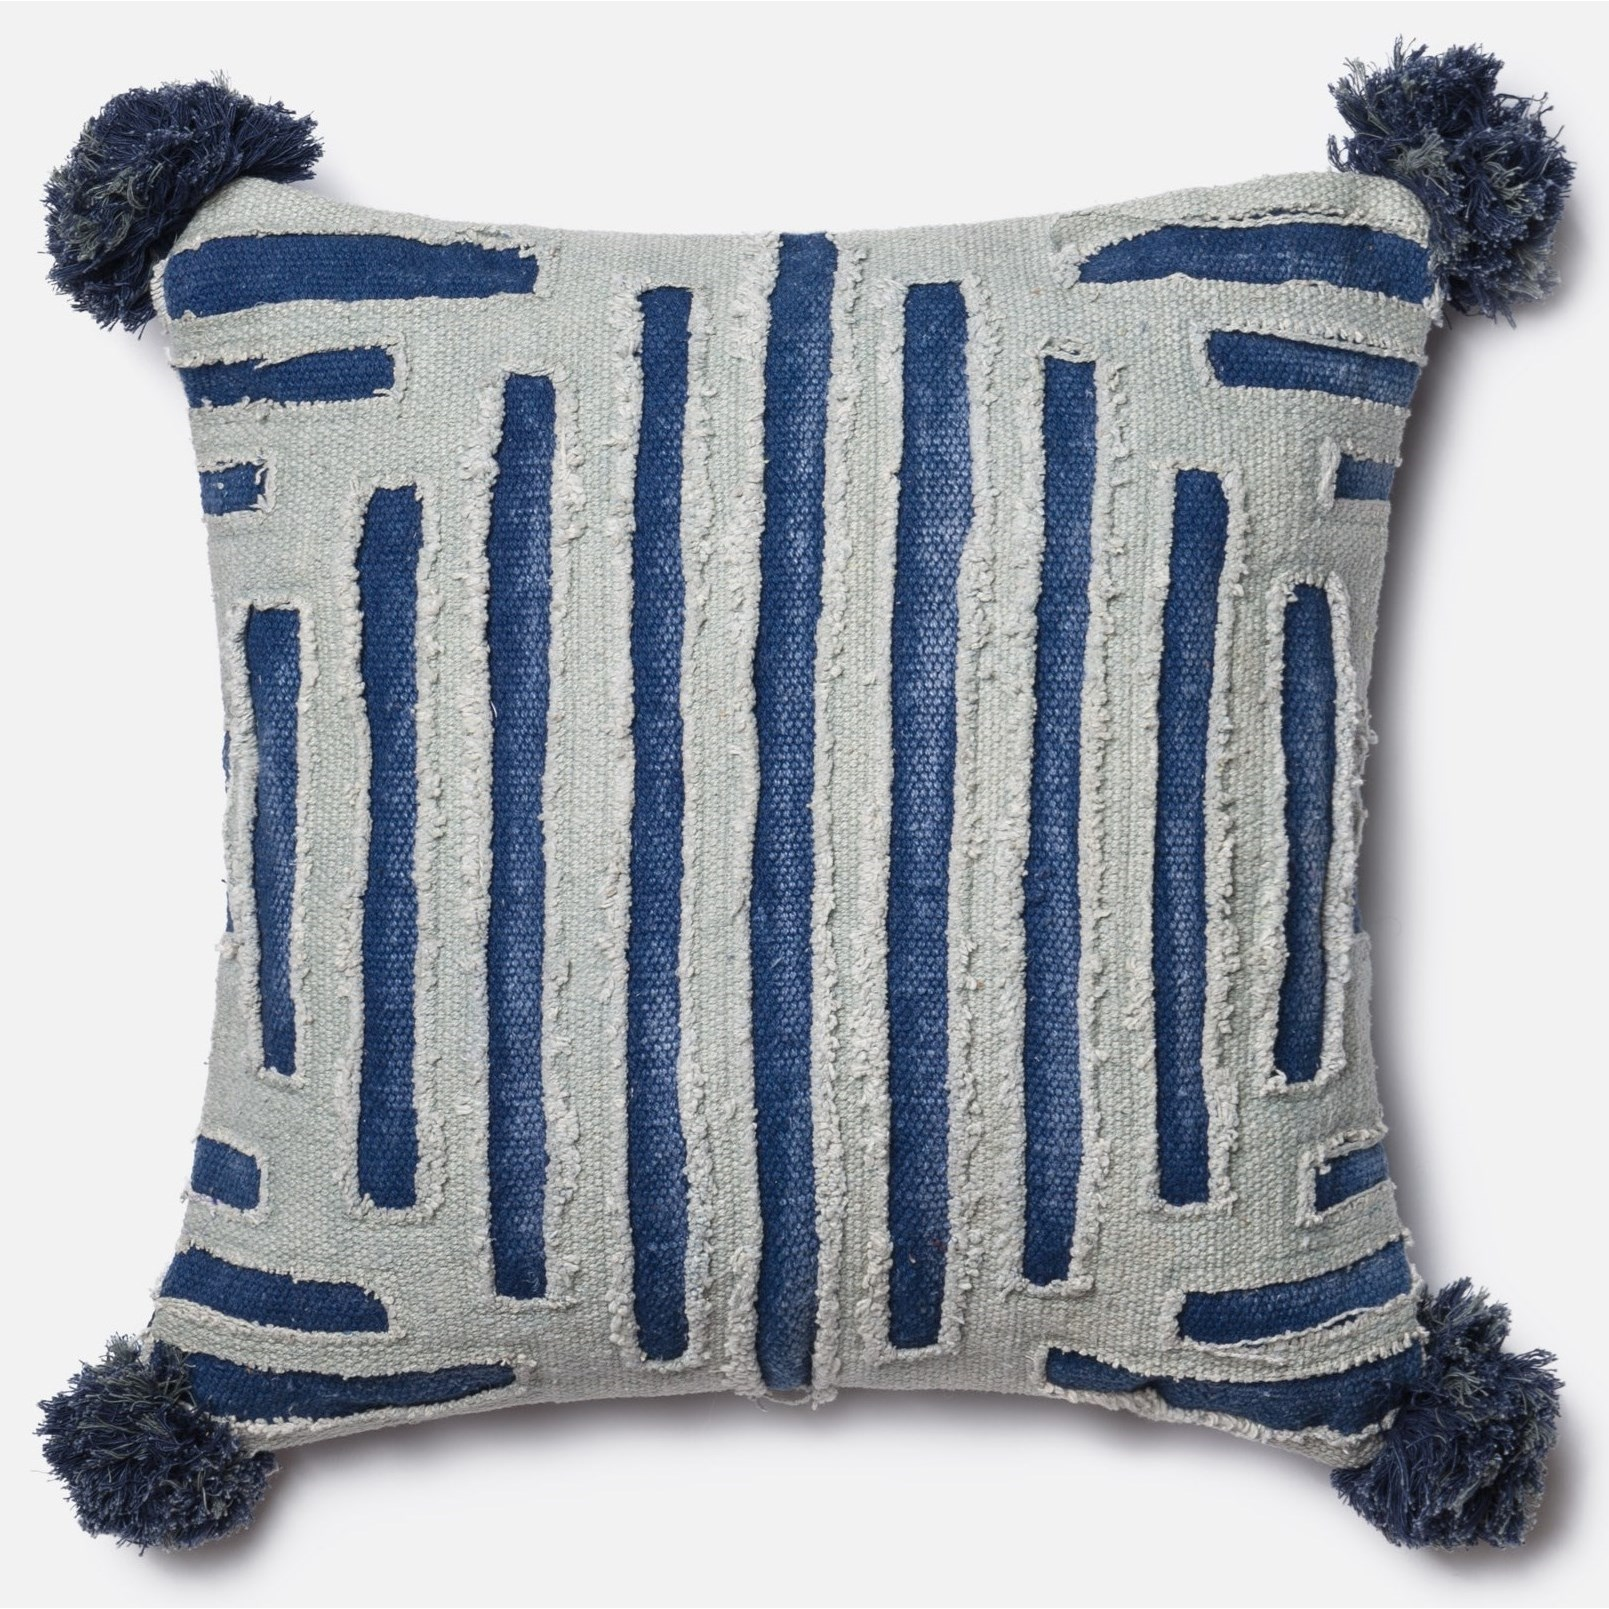 """Embellished 18"""" X 18"""" Down Pillow by Loloi Rugs at Virginia Furniture Market"""